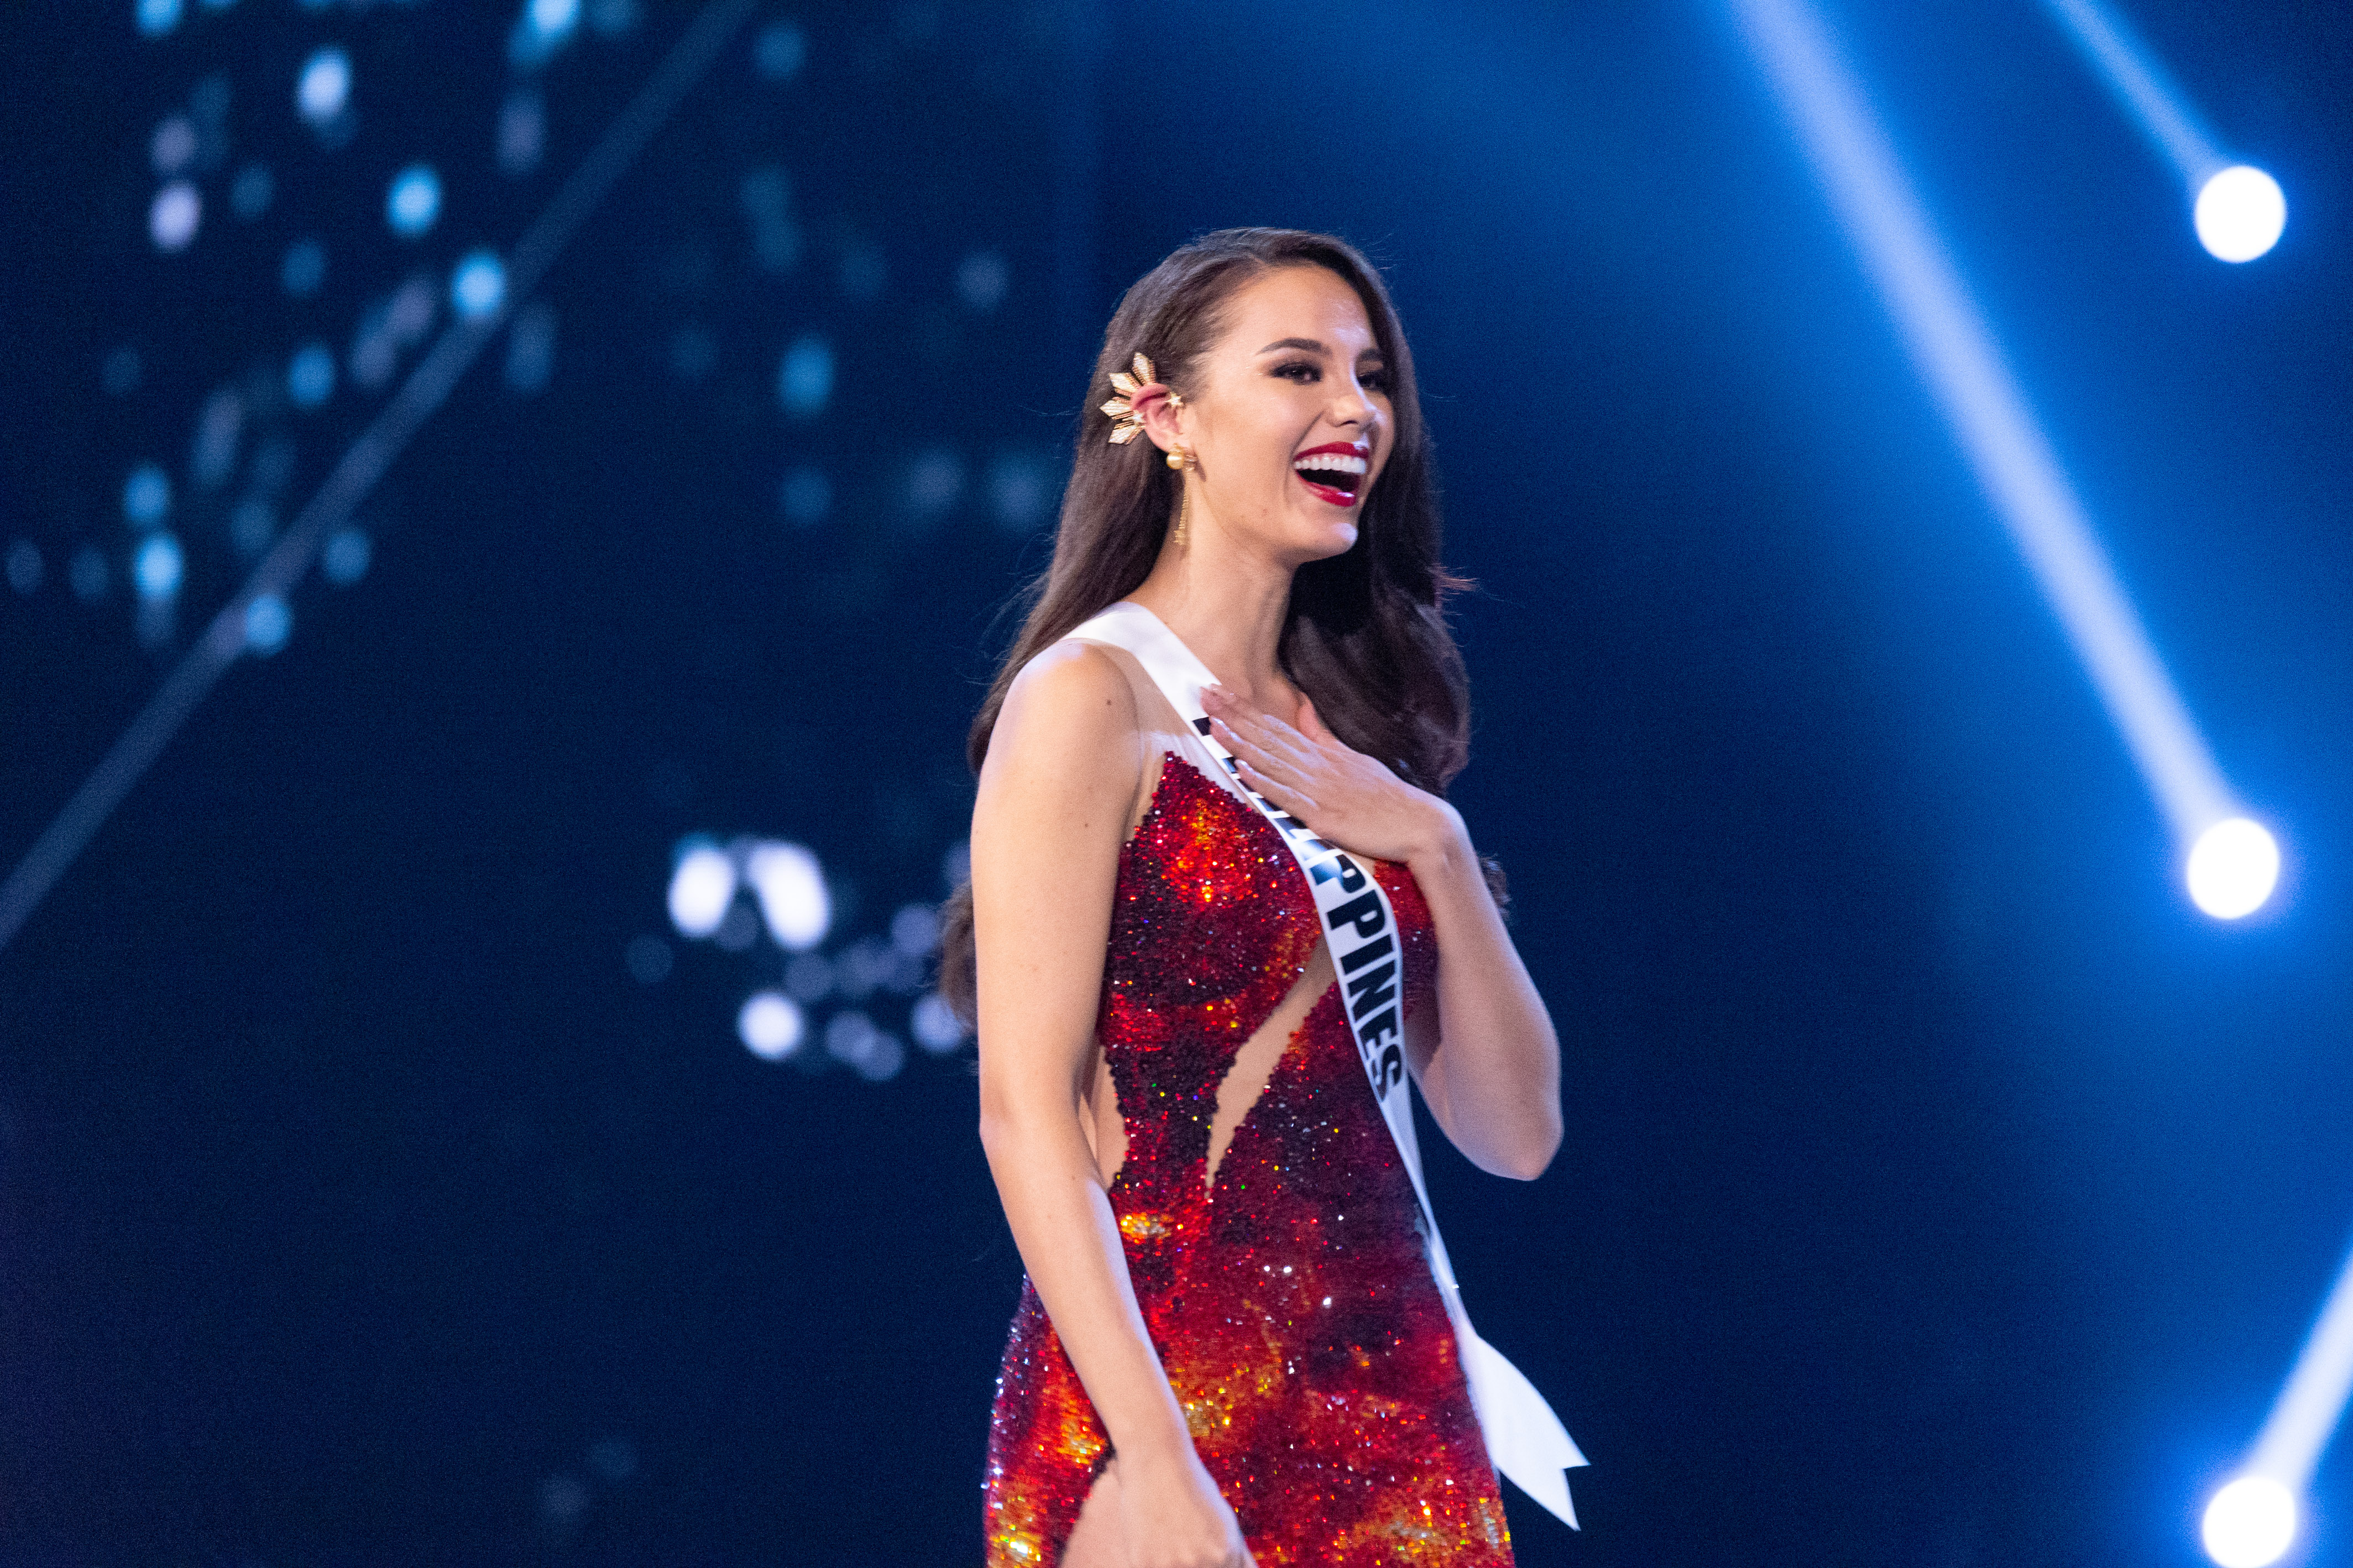 TOP 3.Catriona Gray, Miss Philippines 2018 is announced as a Top 3 finalist during the Miss Universe pageant. Photo by the Miss Universe Organization